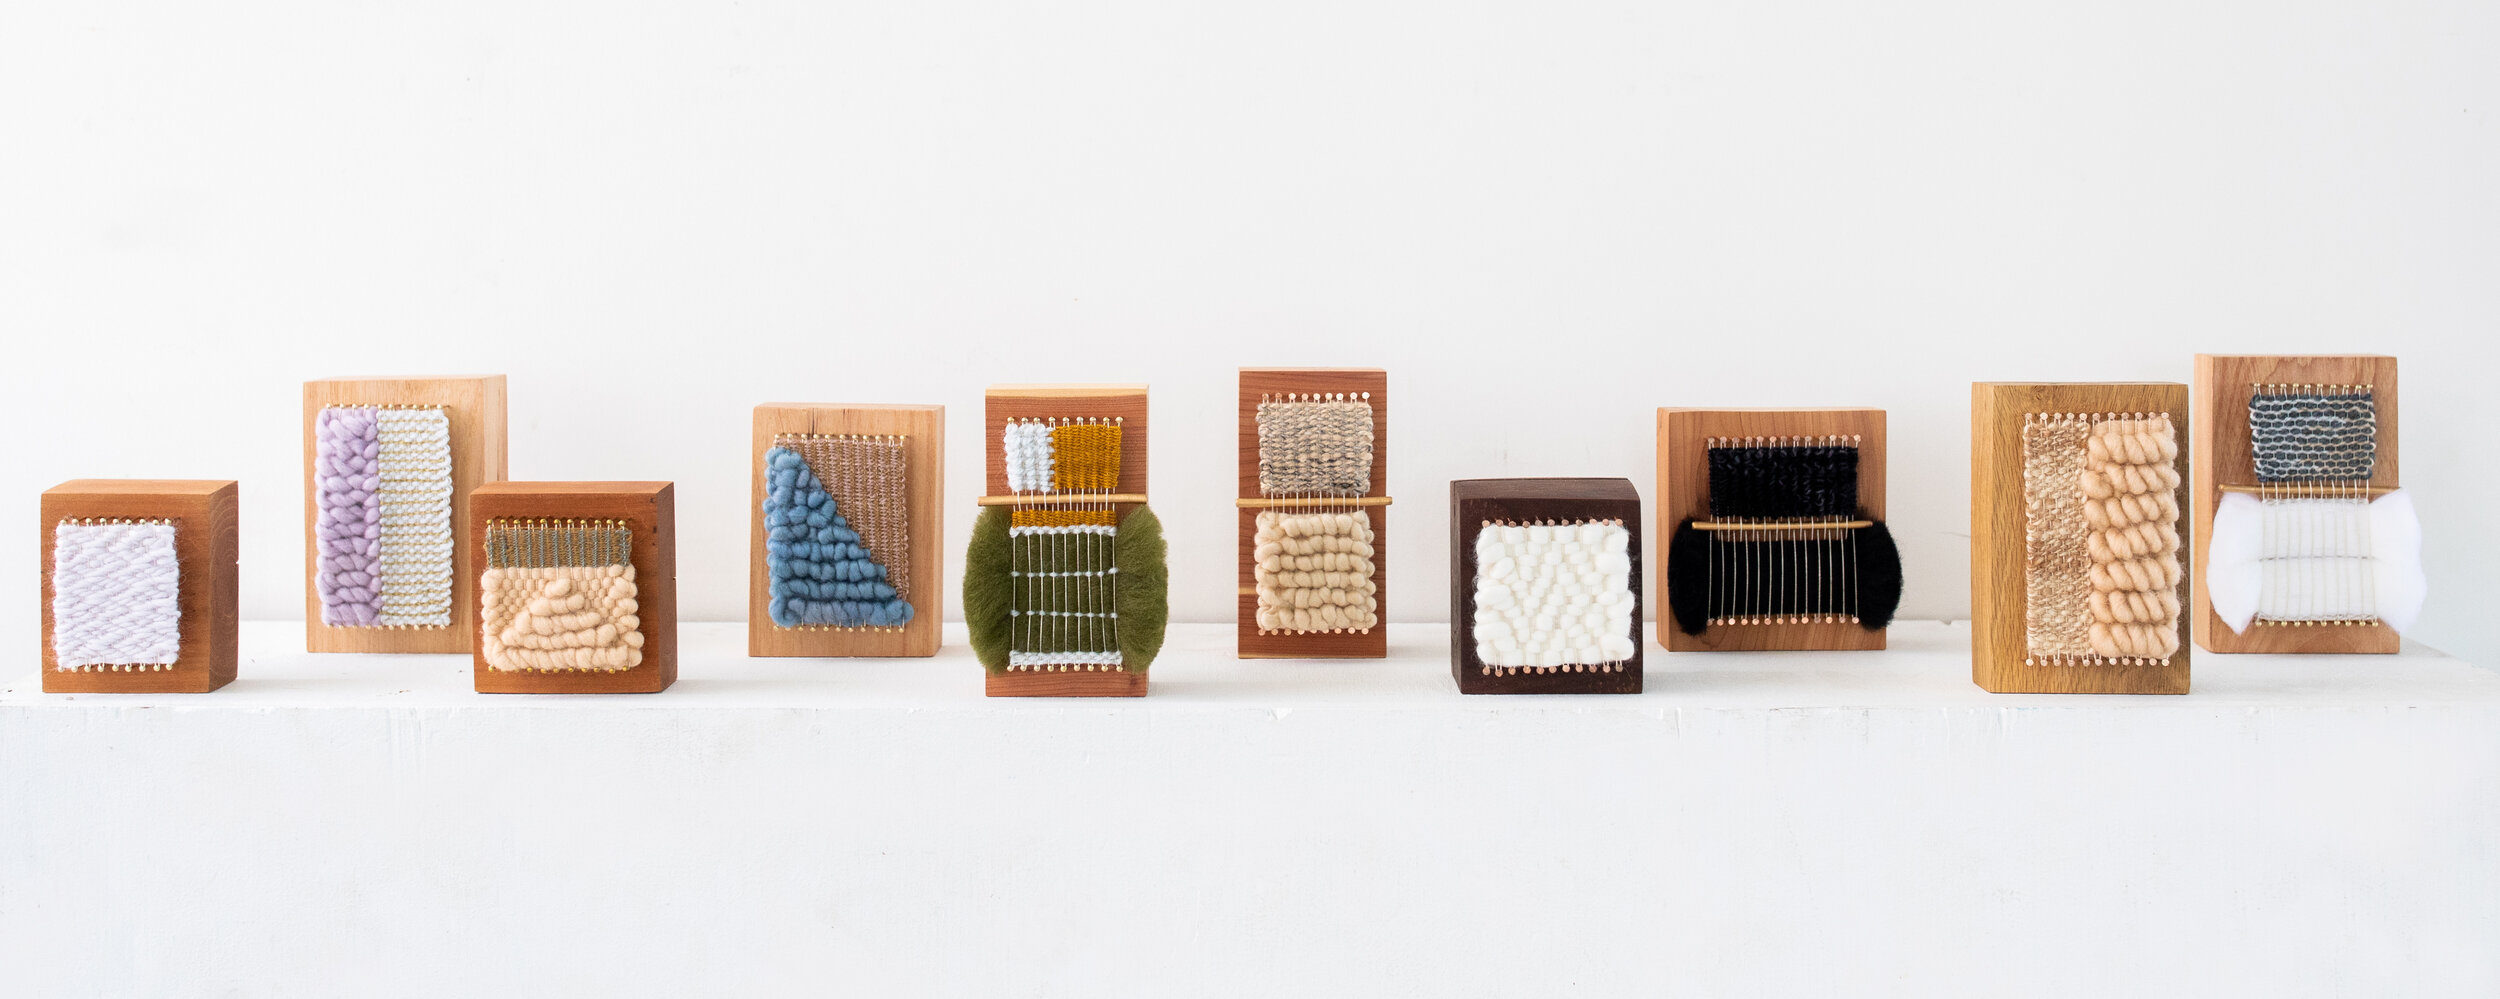 Twenty Two West x Spoak - Mary Hamby is a full-time artist in Charlotte, North Carolina. Born and raised in Greenville, South Carolina, she named her brand after her childhood home address - Twenty Two West. Each loom block in this collection is handmade and one-of-a-kind.